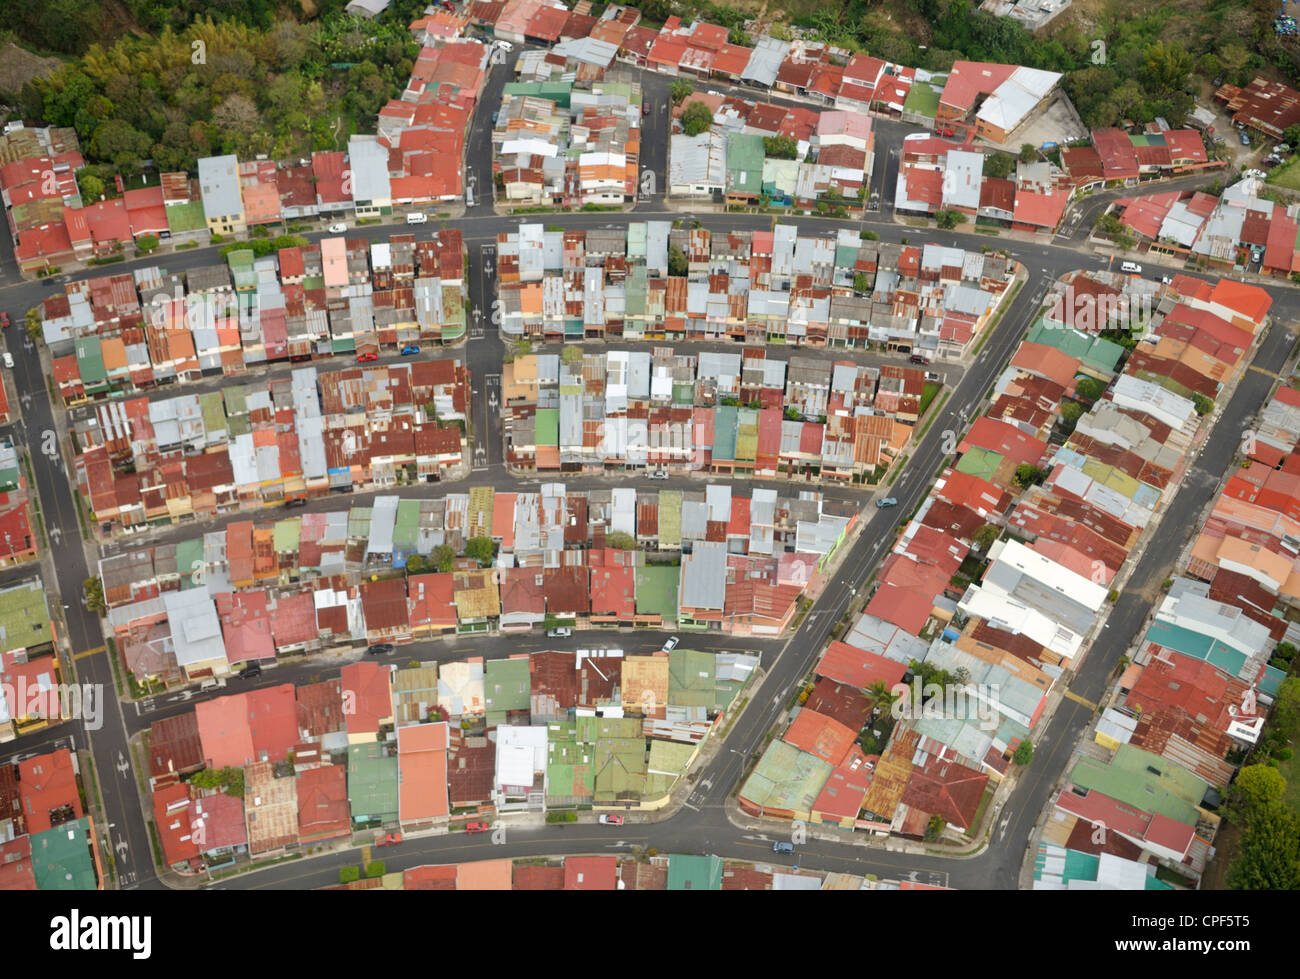 Rooftops, San Jose, Costa Rica - Stock Image